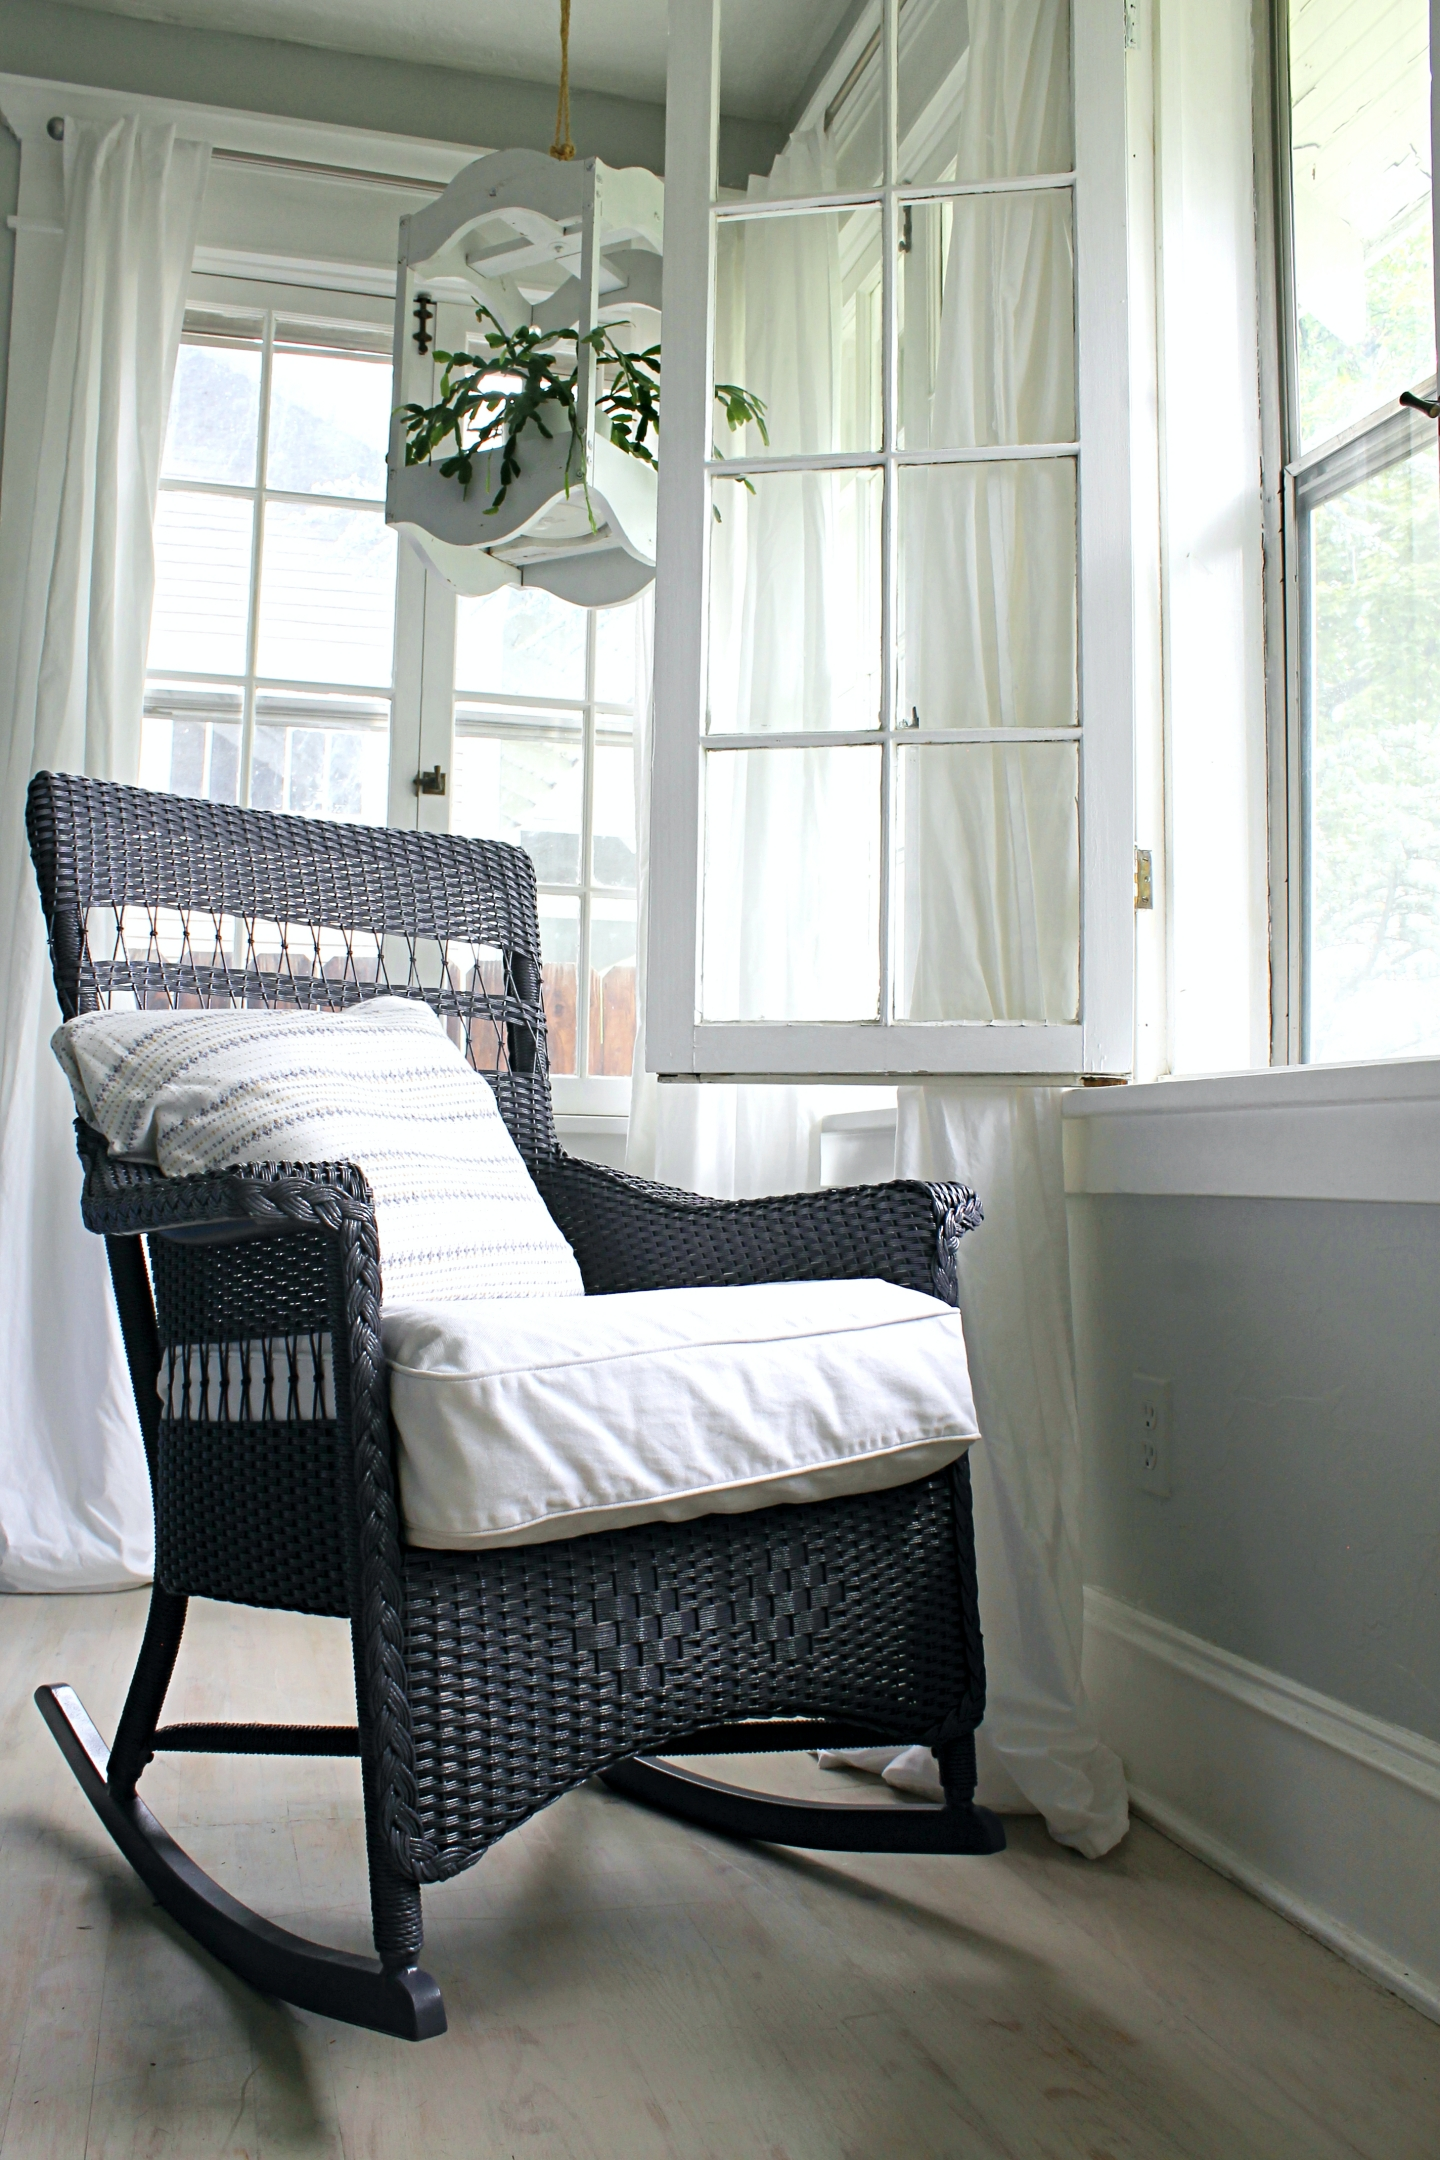 How To Paint Wicker And A Wicker Chair Makeover The Wicker House